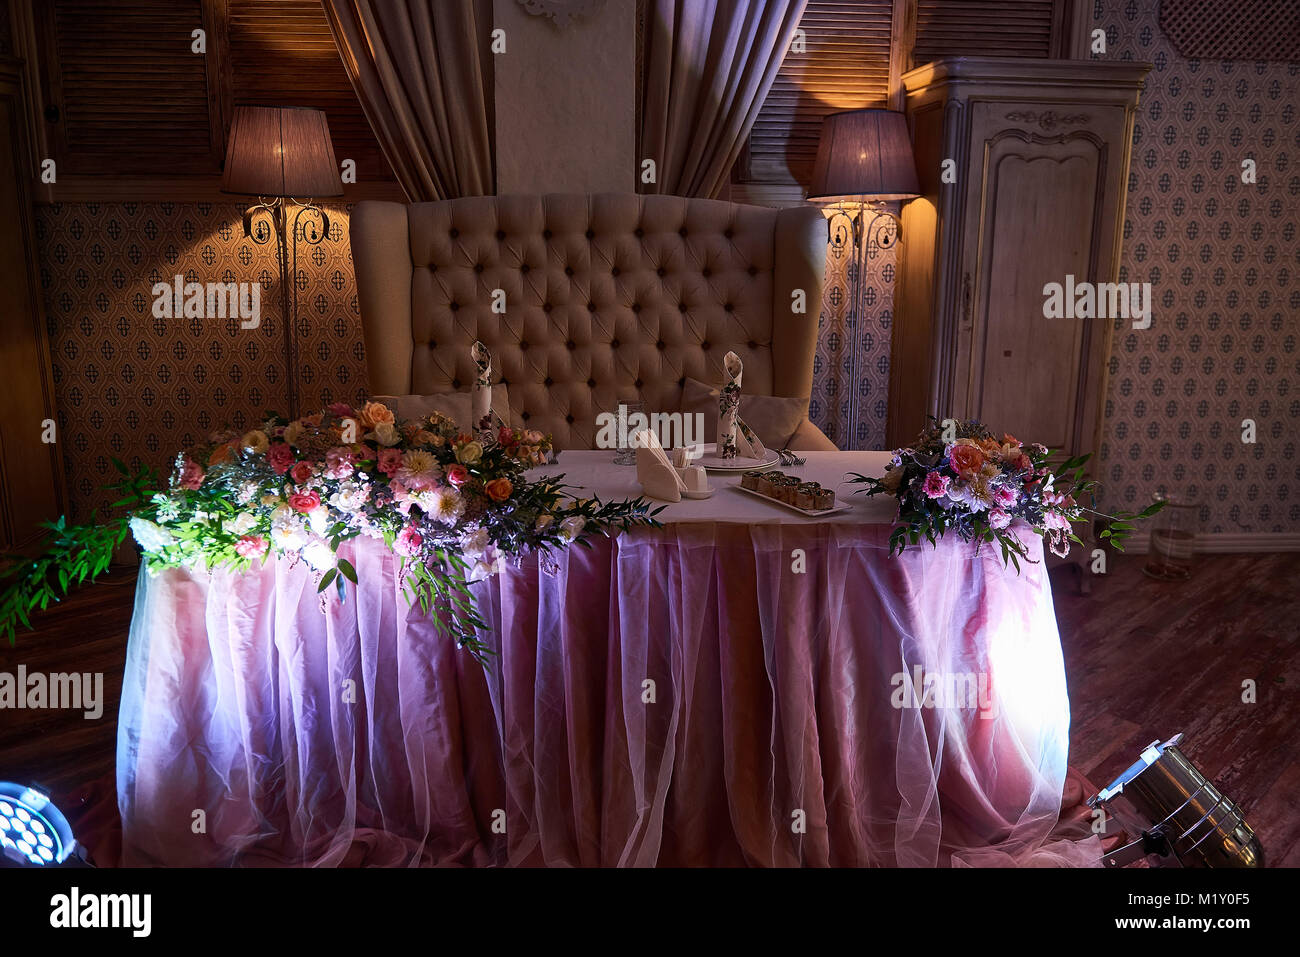 Decorated restaurant table for newlyweds - Stock Image